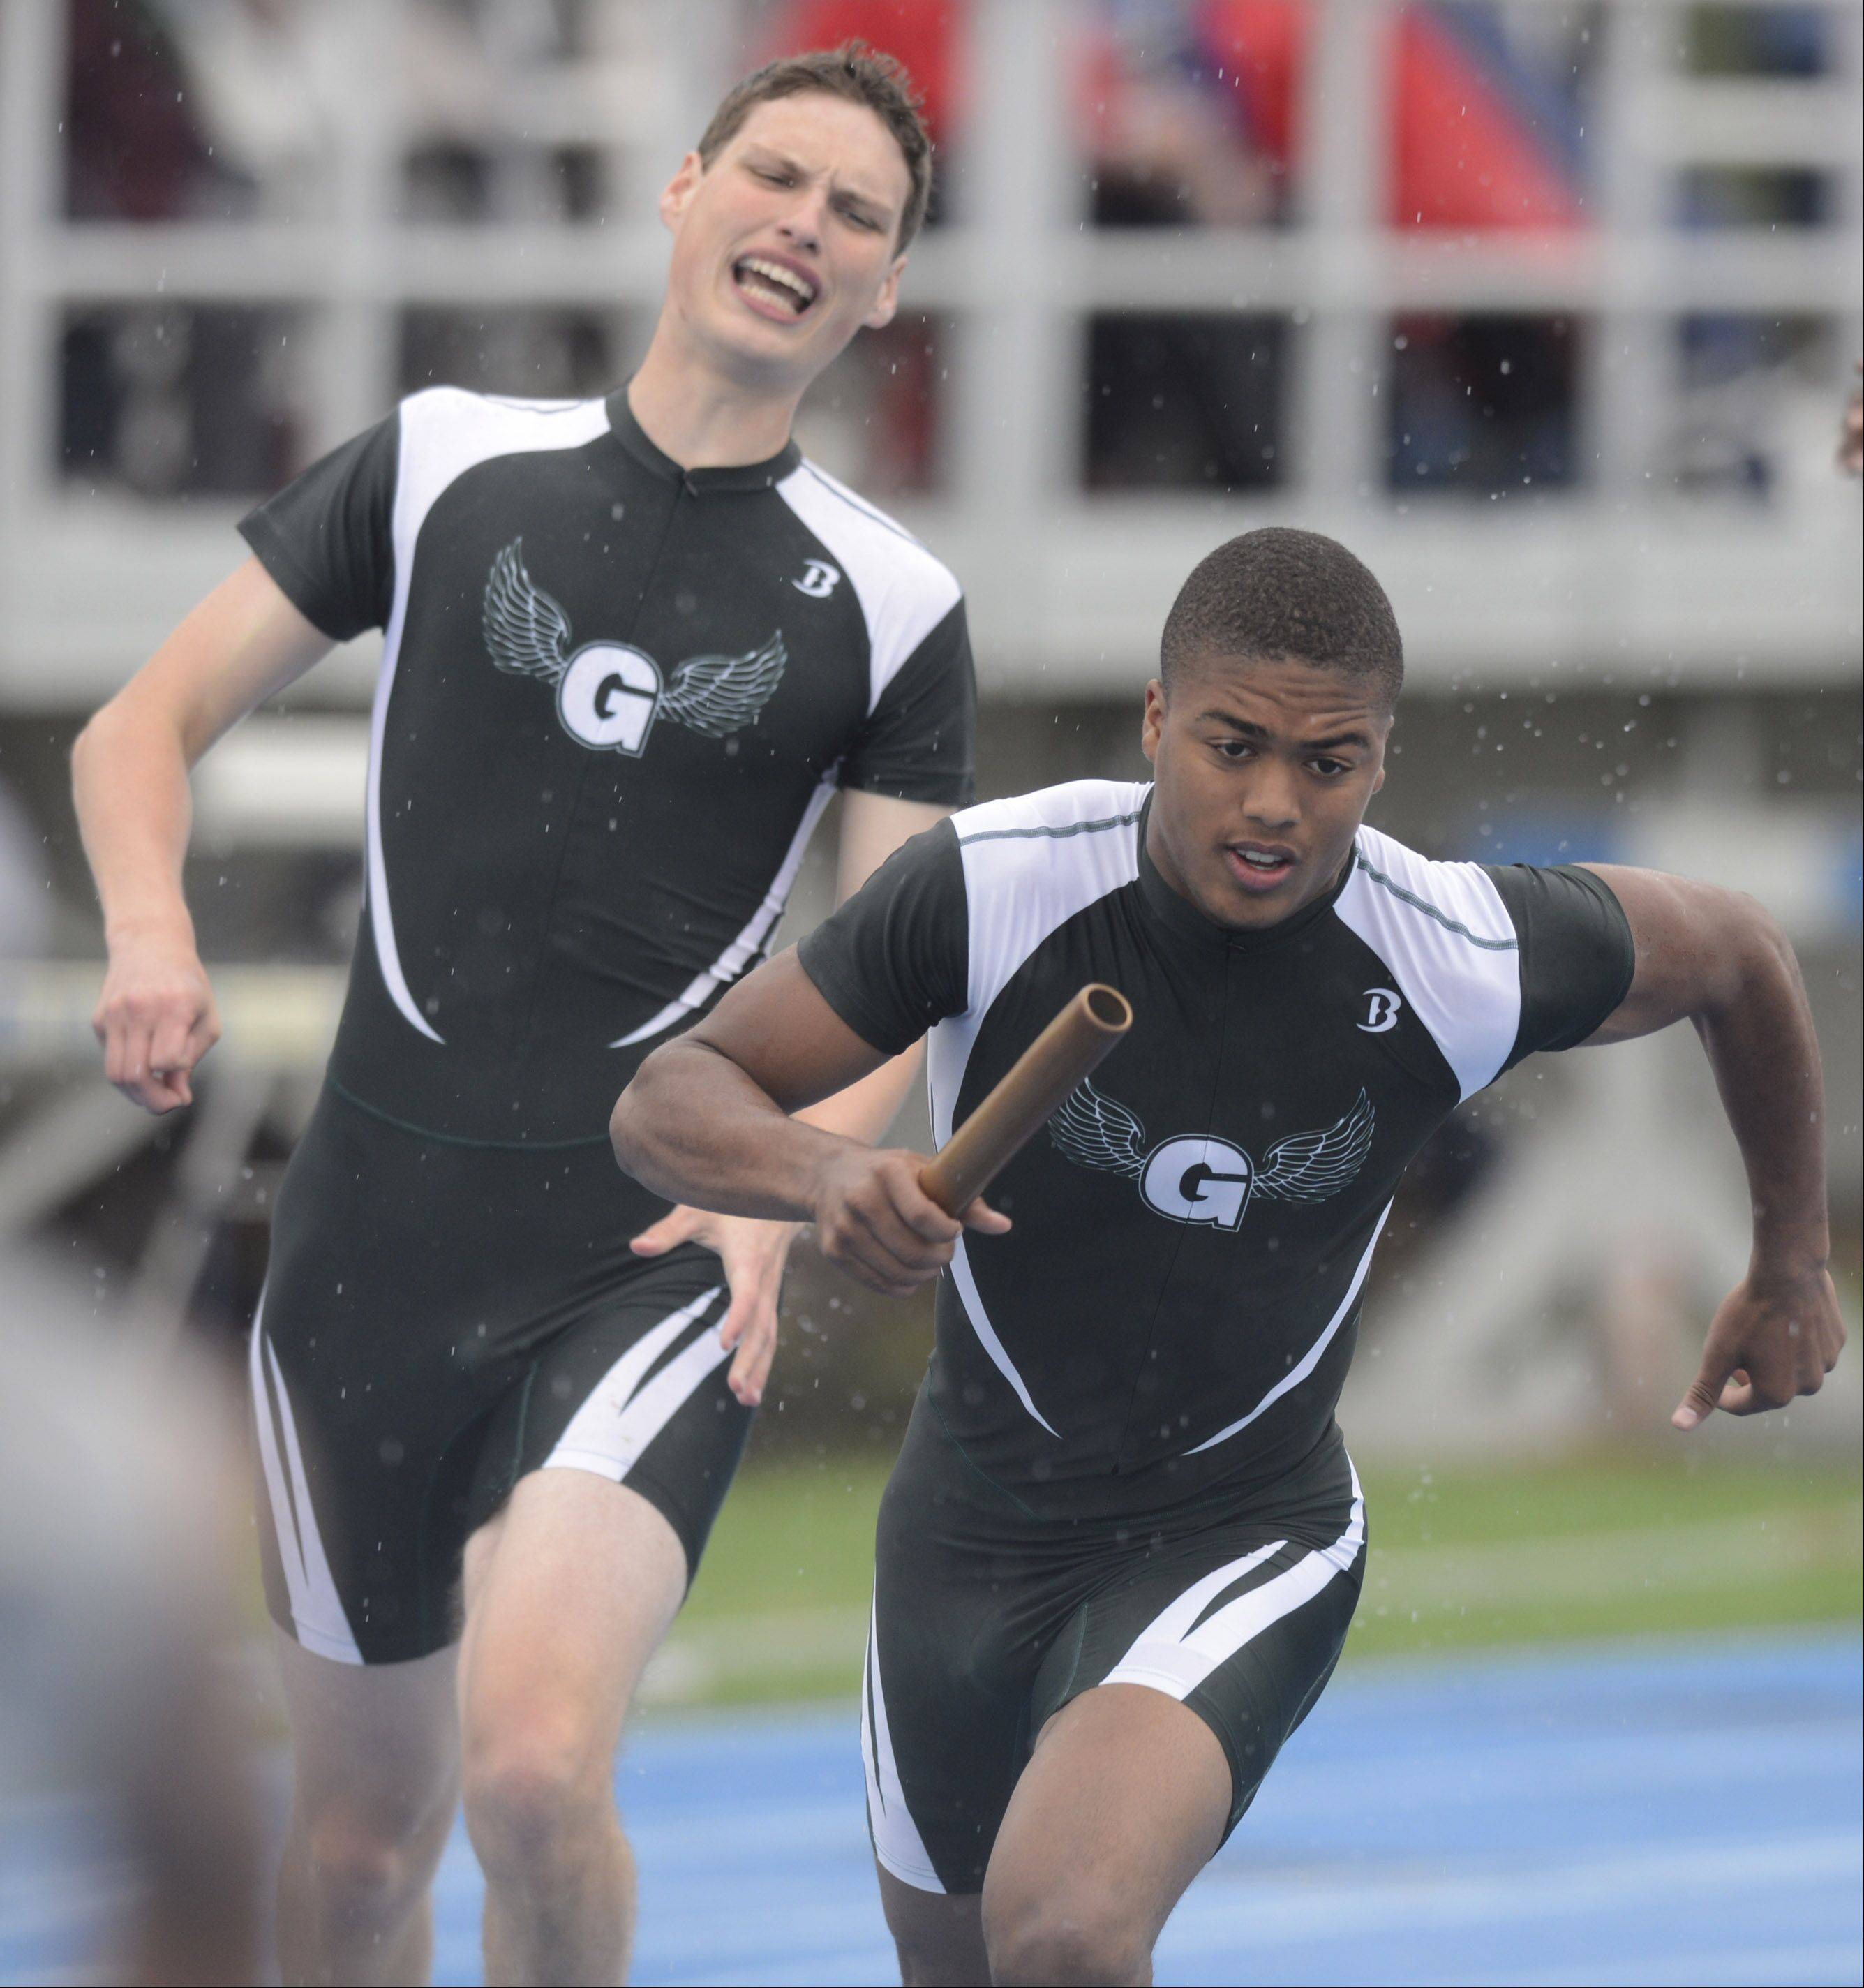 Grayslake Central's Kacey Adams takes the baton from teammate Matt Weatherhead in the Class 2A 4x200-meter relay during the boys track state finals in Charleston on Saturday.